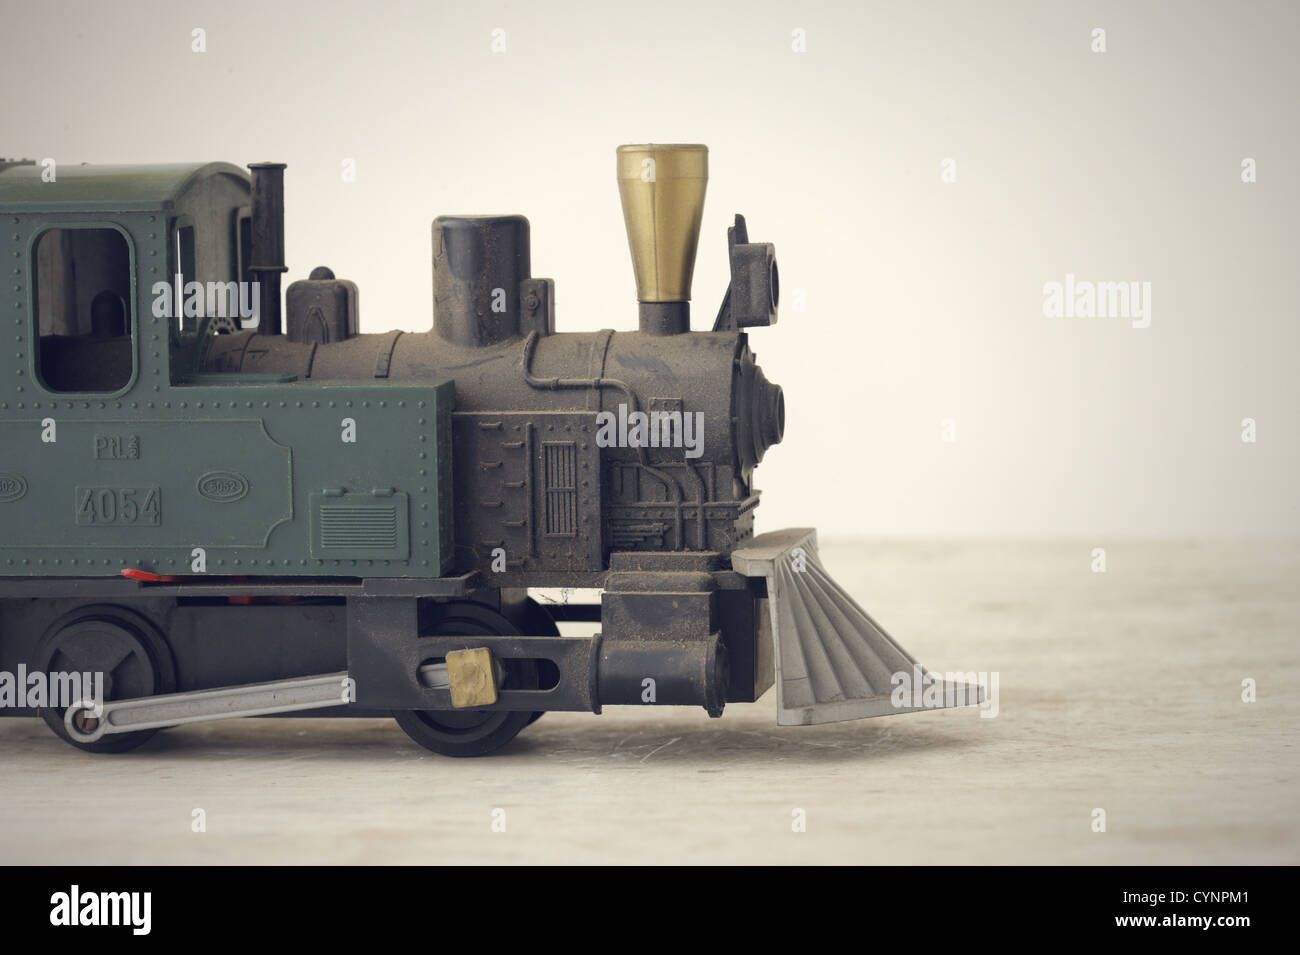 Scale Model of an Old Fashioned Locomotive Steam Train - Stock Image